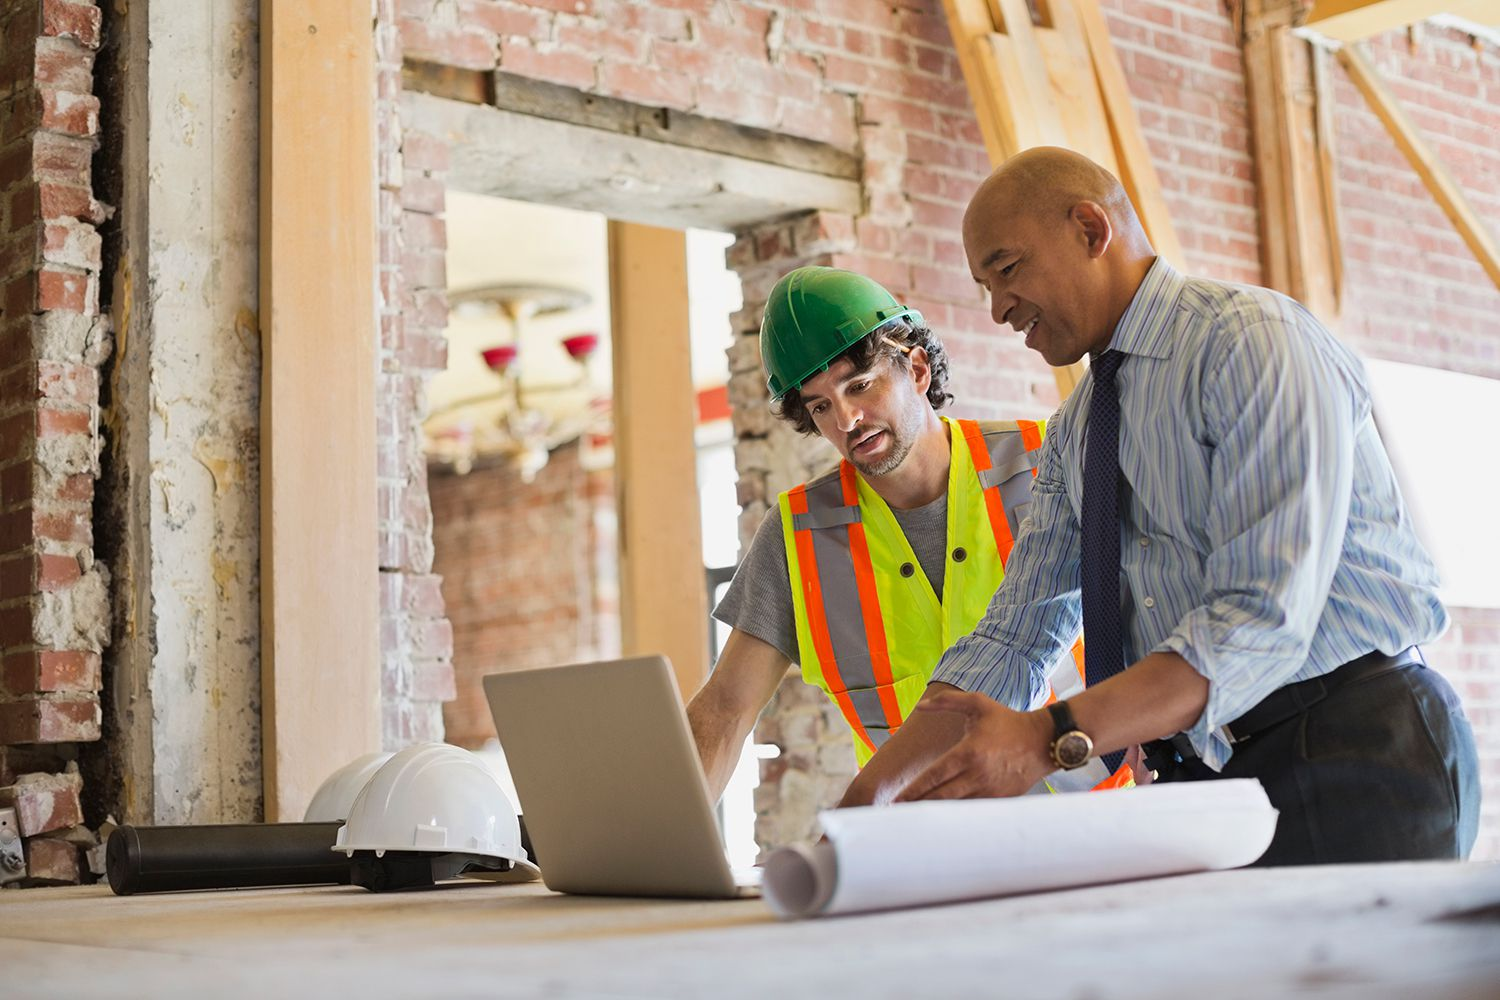 Hiring Contractors Through HomeAdvisor—Pros and Cons